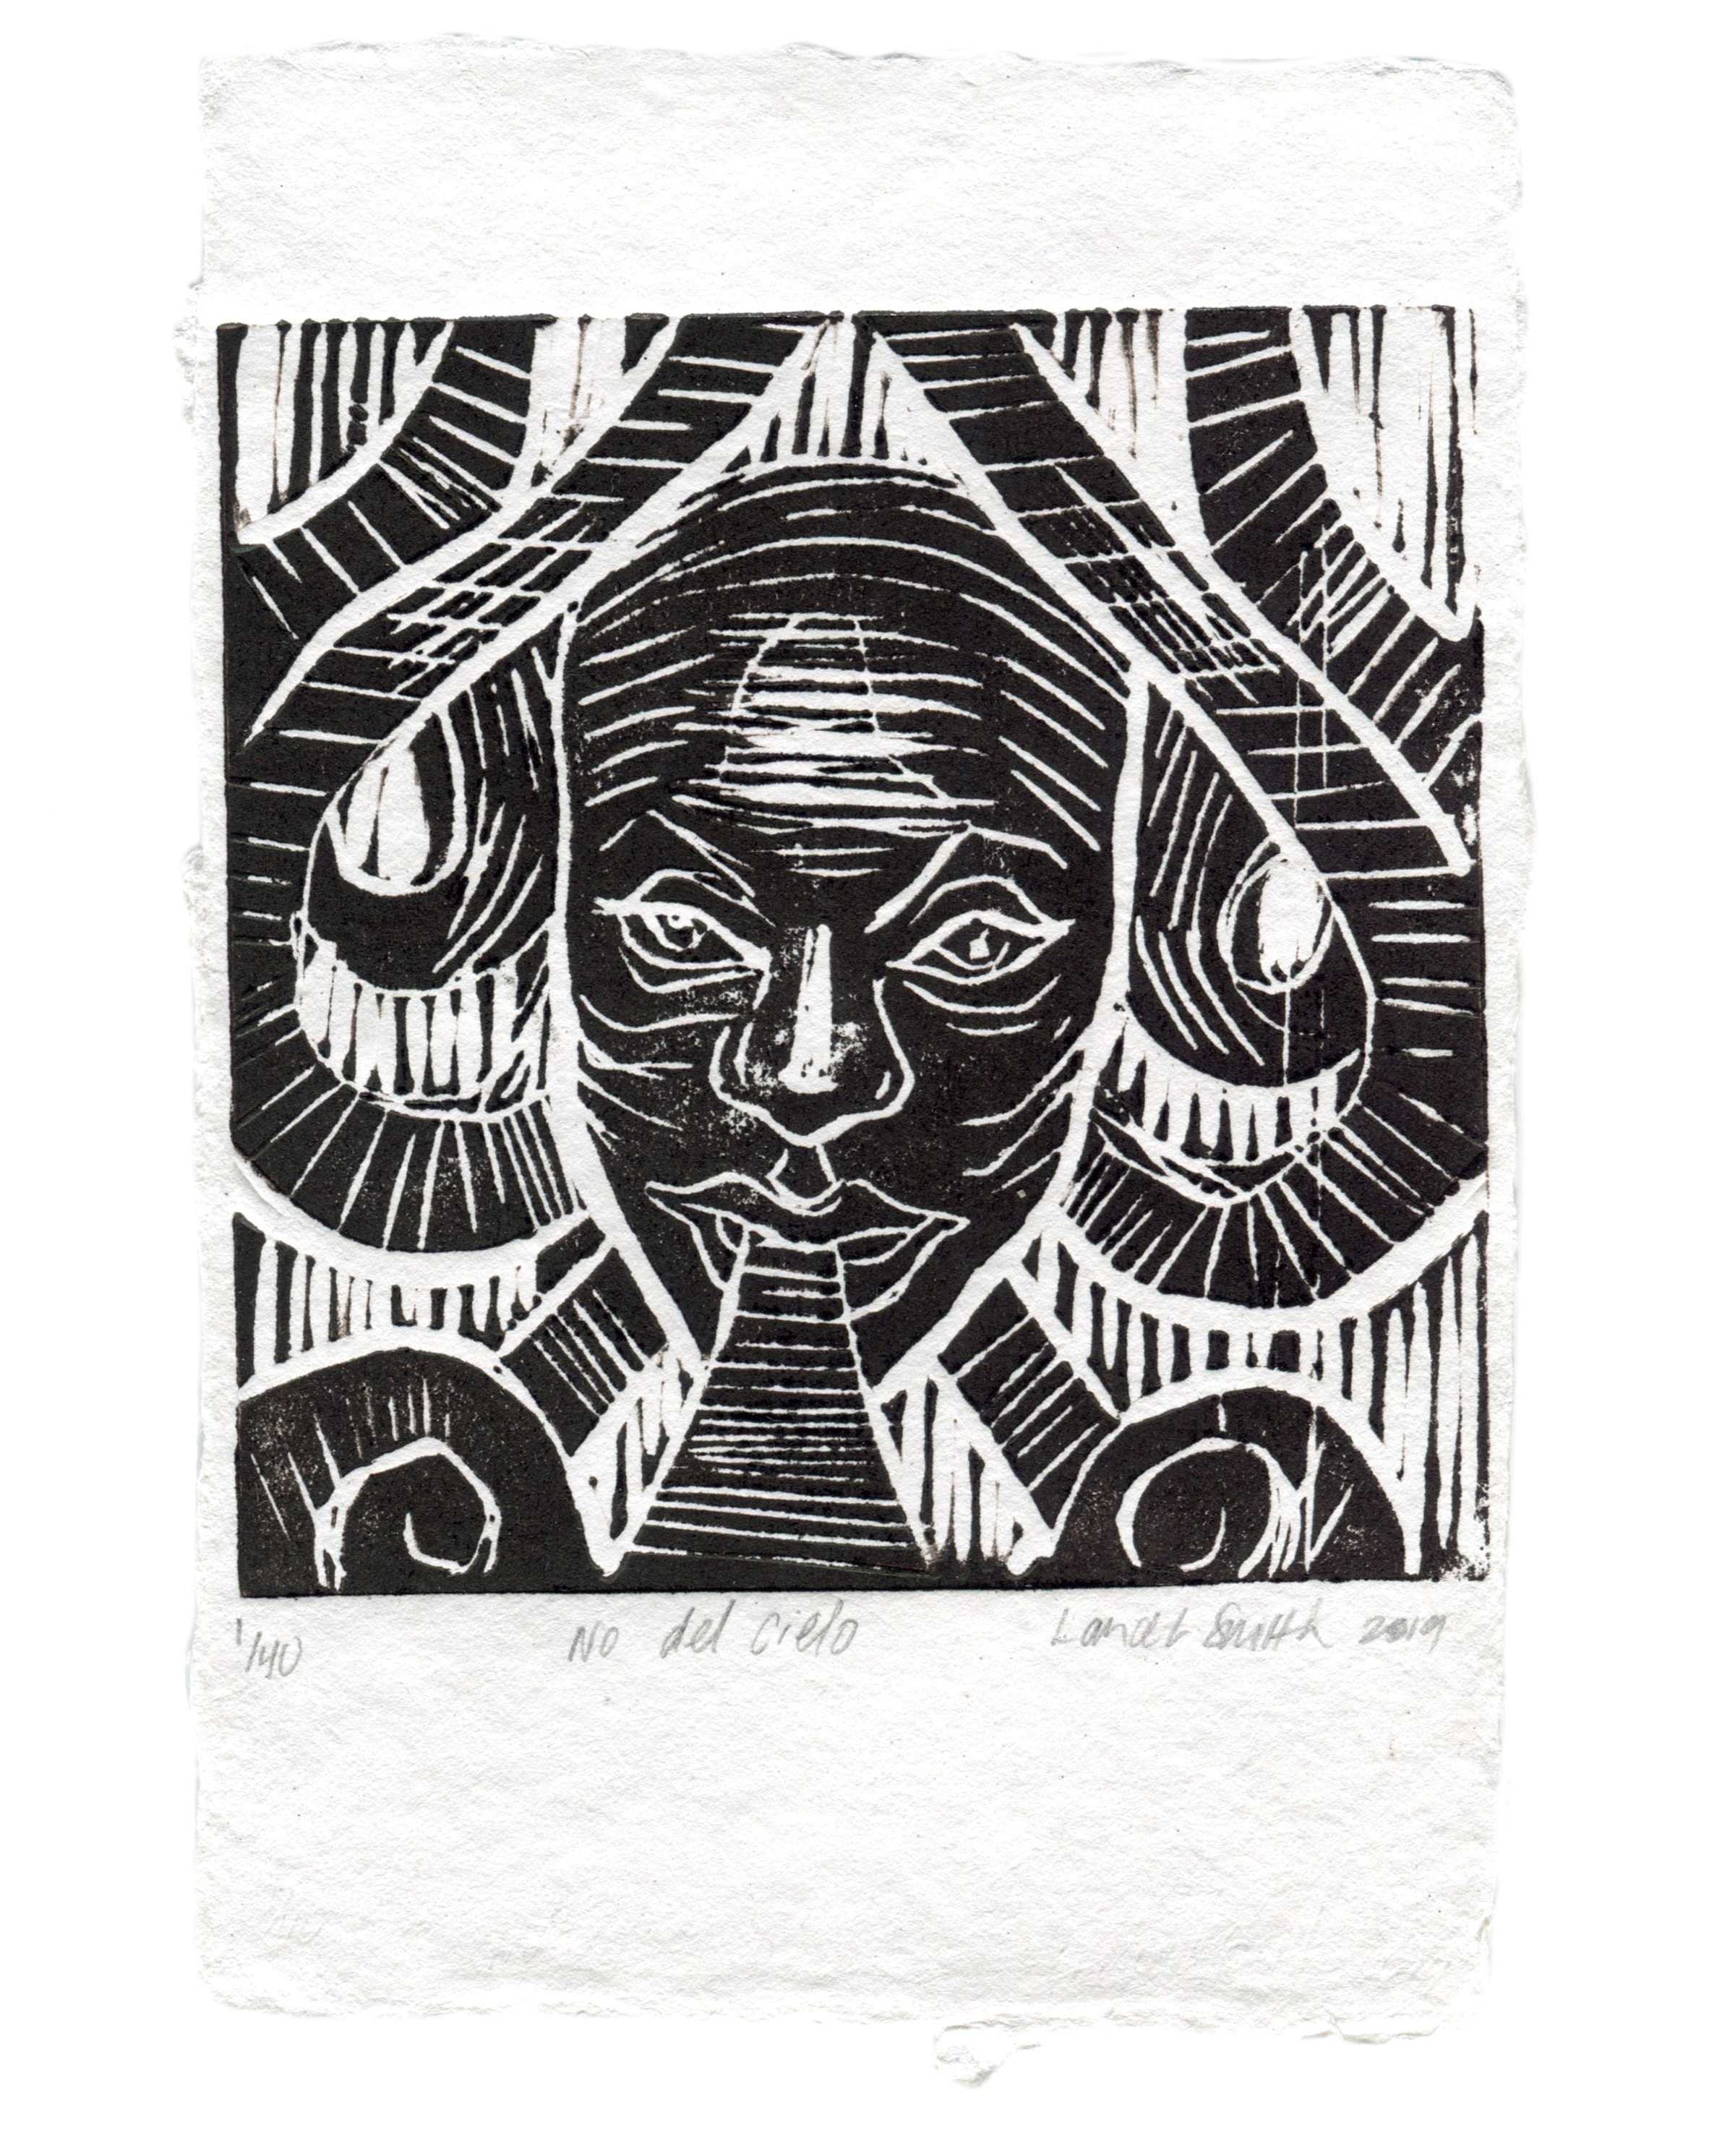 NO DEL CIELO  Hand-pressed Linocut on Handmade Paper  Edition of 40  2019